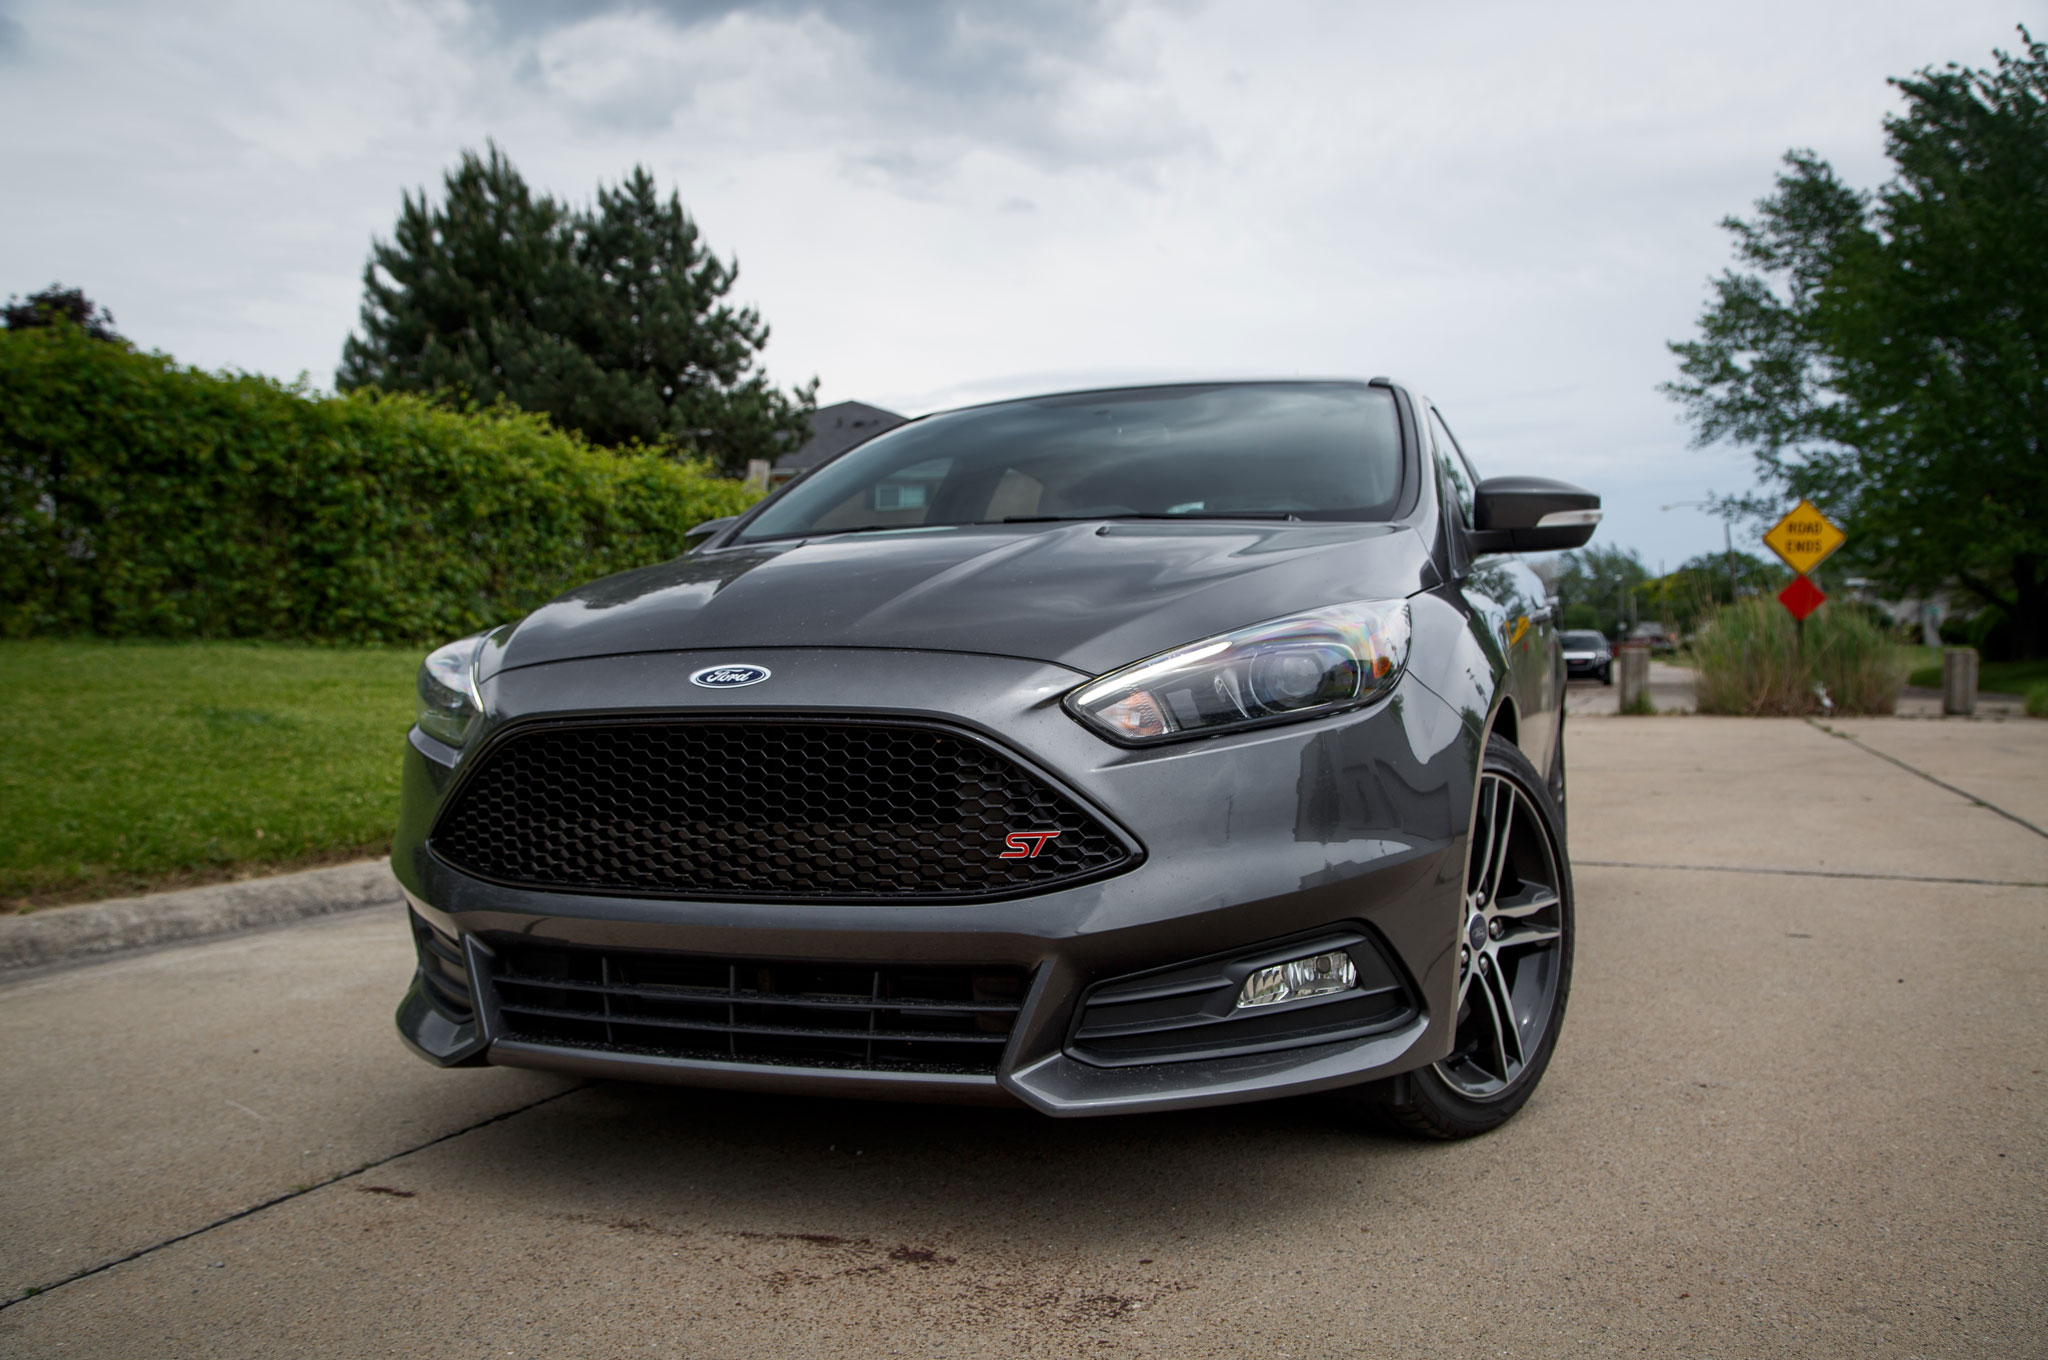 Focus St Performance Parts >> 2015 Ford Focus St With Ford Performance Parts Review